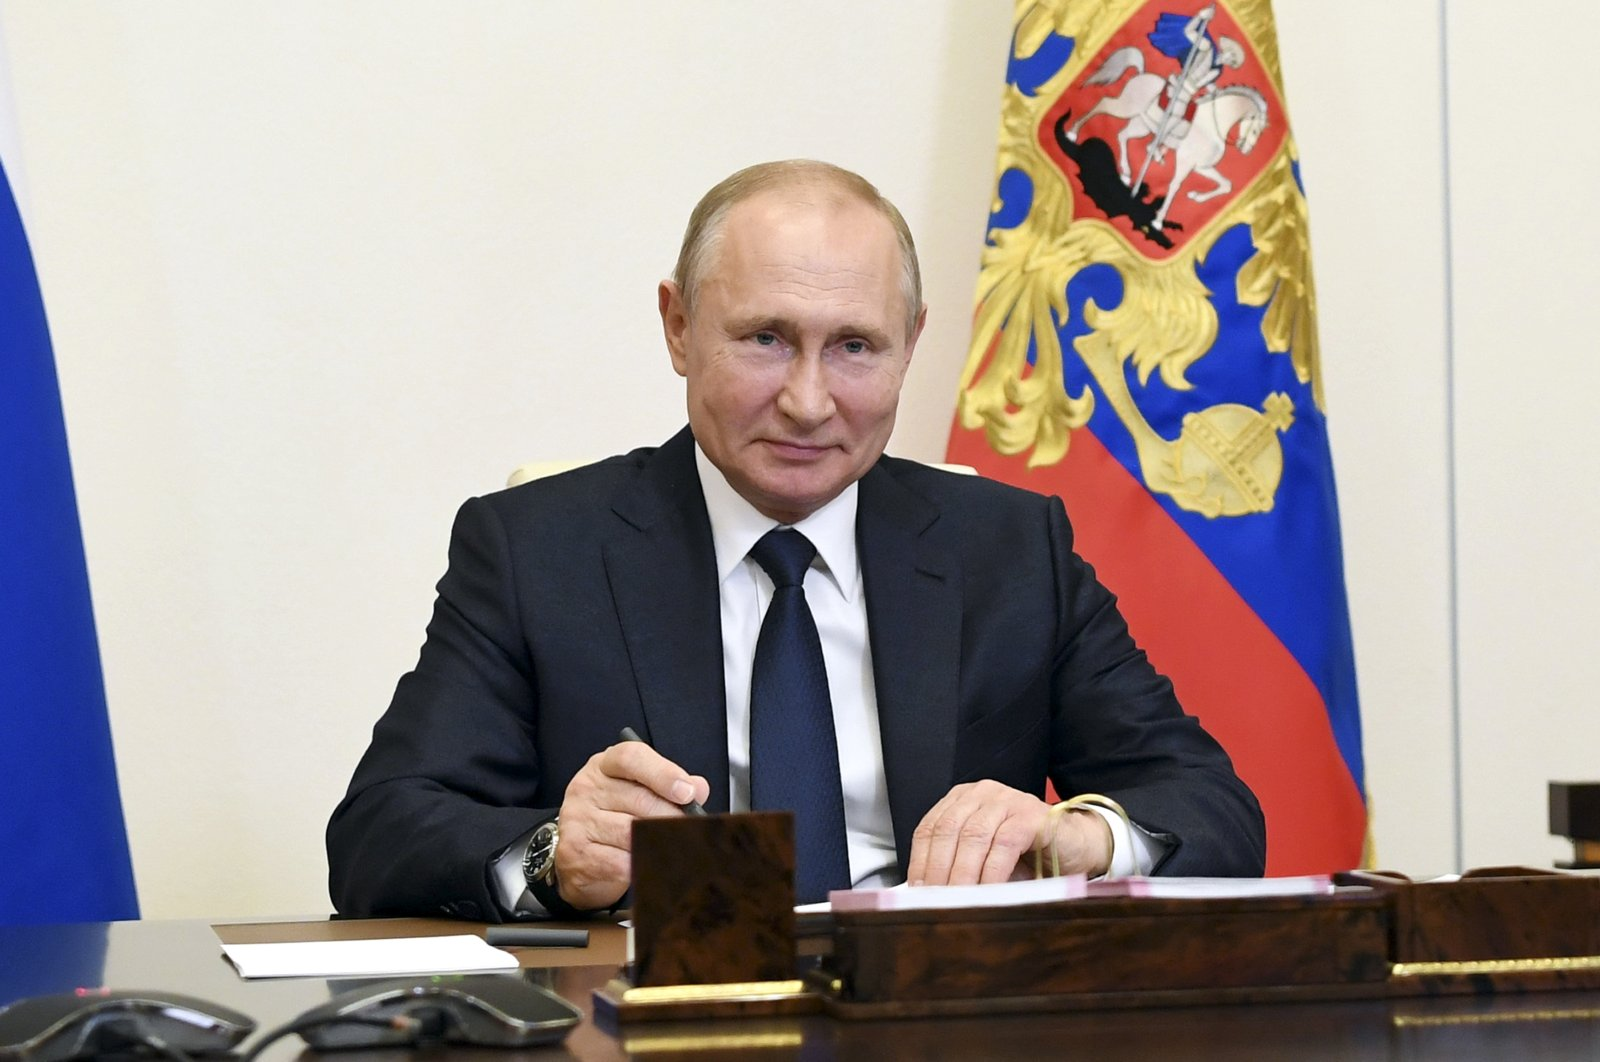 Russian President Vladimir Putin attends a meeting via teleconference at the Novo-Ogaryovo residence outside Moscow, Russia, June 1, 2020. (Kremlin Pool Photo via AP)